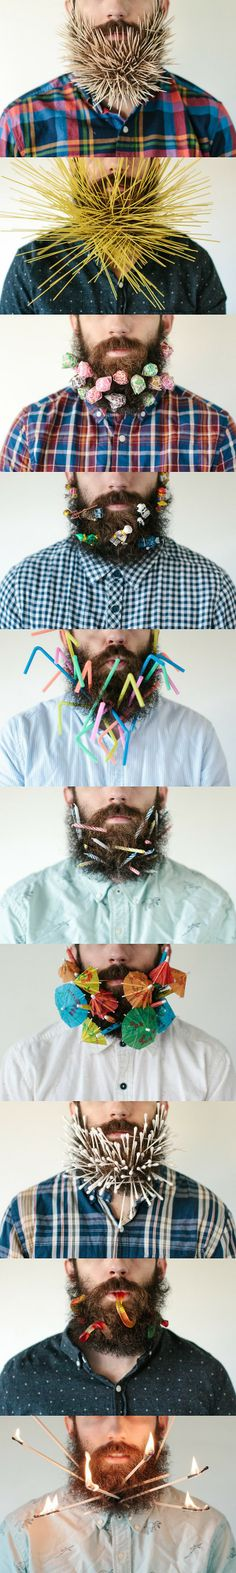 My brother keeps putting things in his beard, and it's pretty amazing.